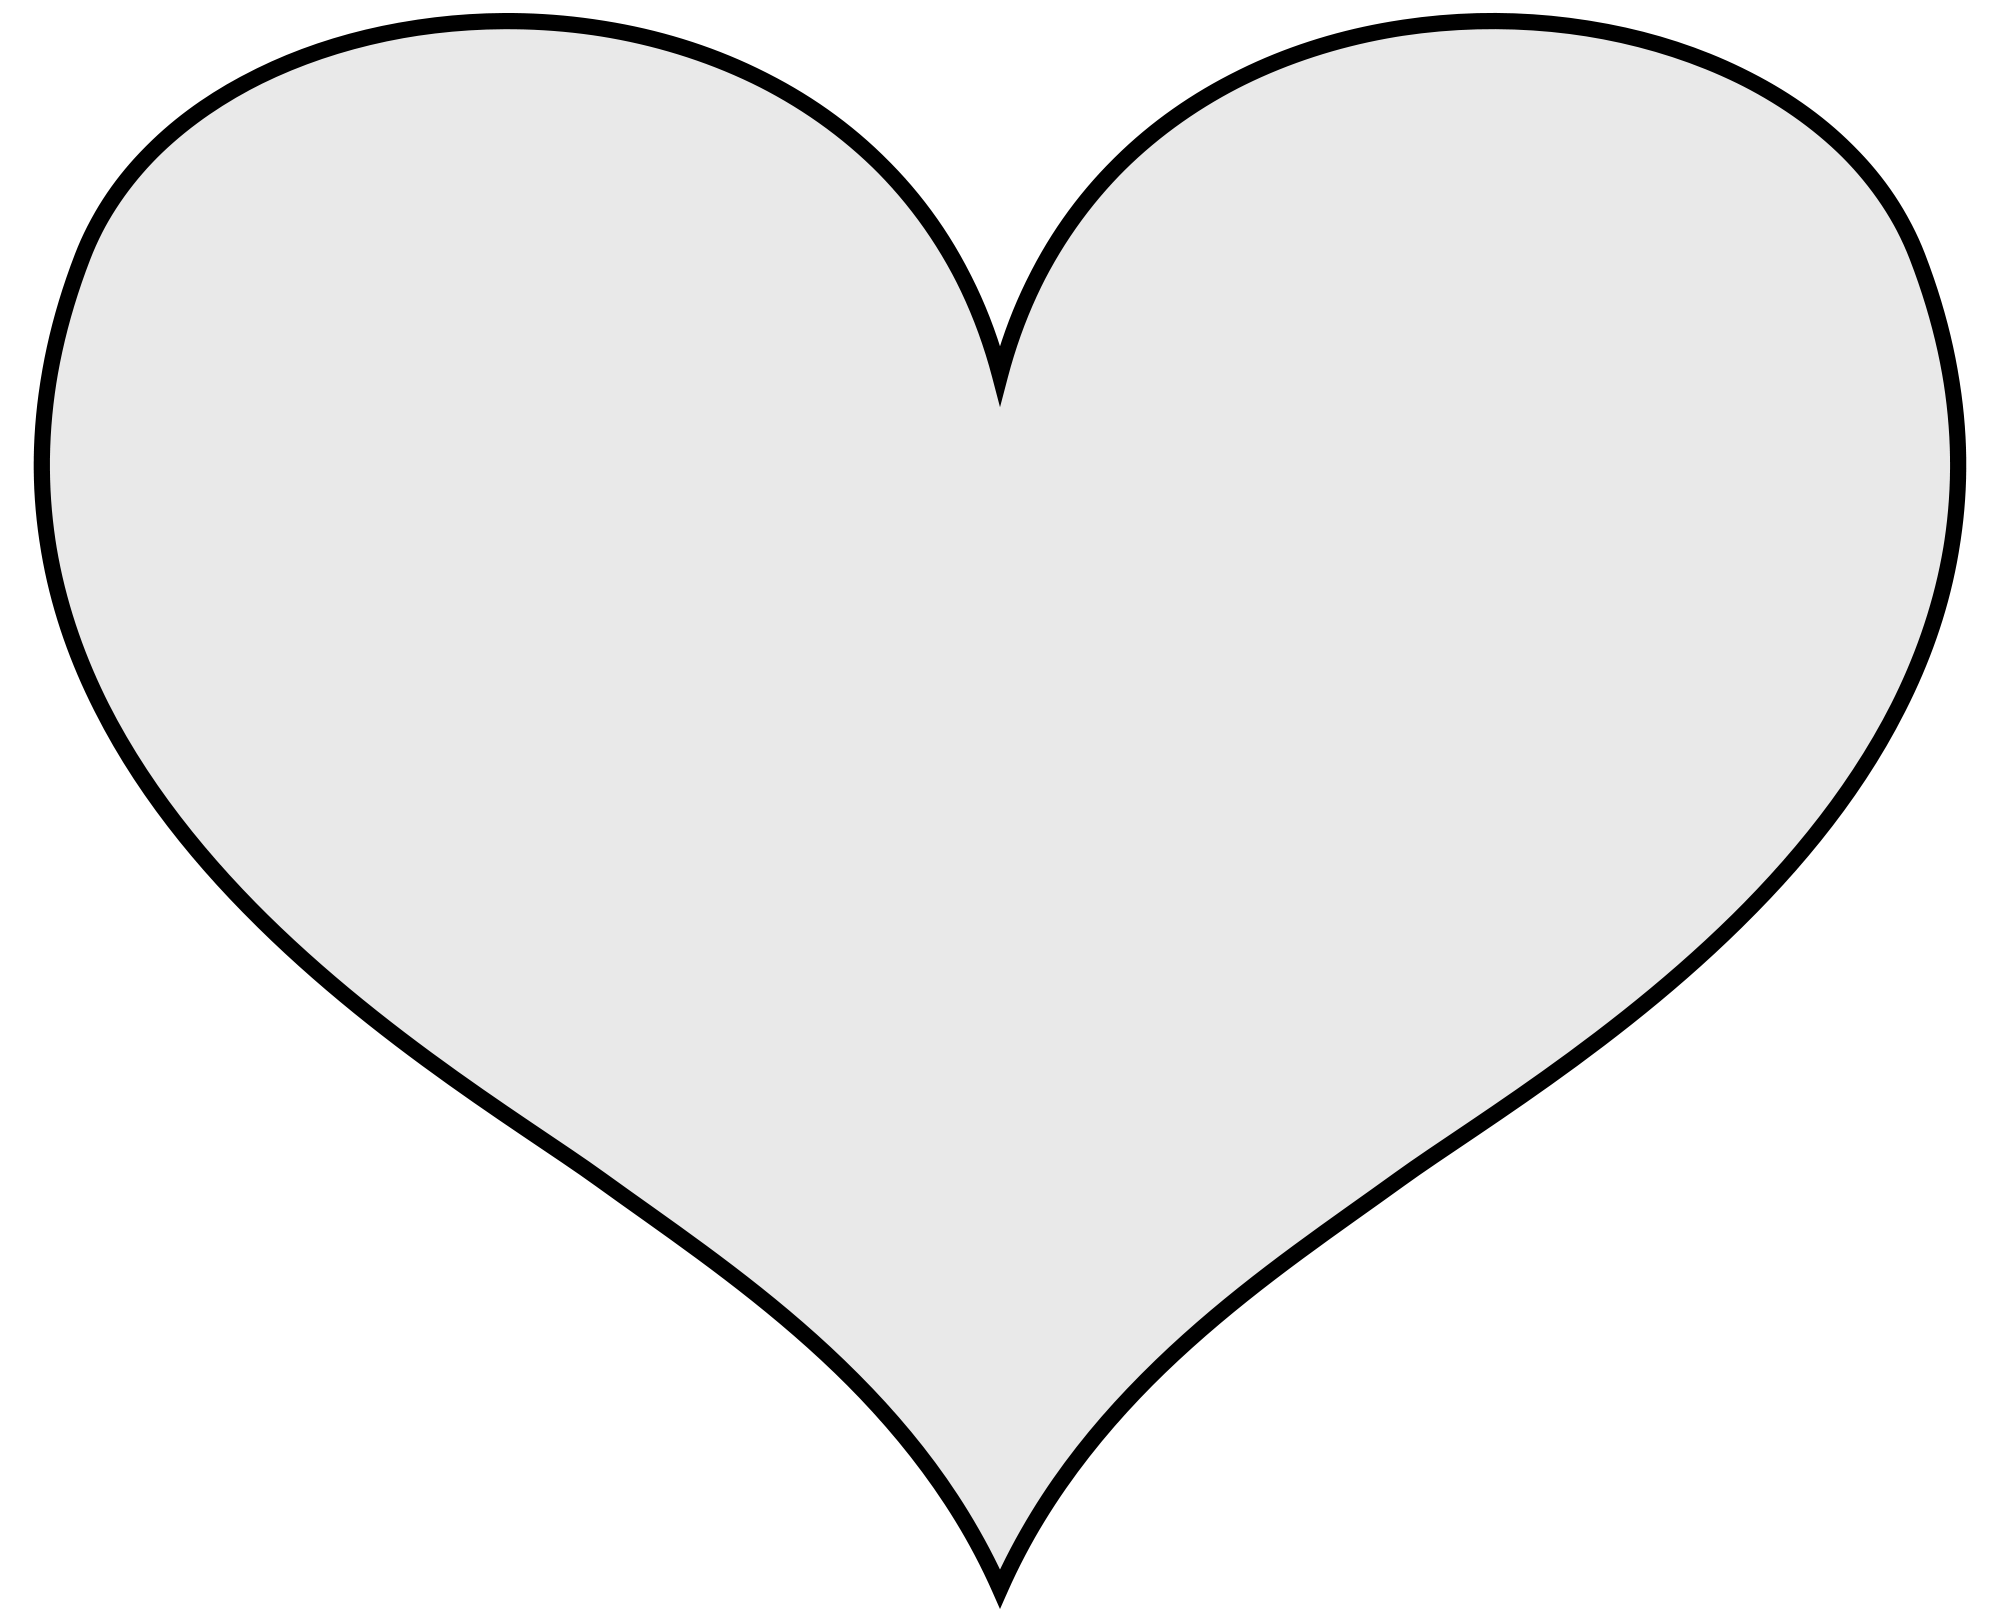 Heart and line clipart clipart black and white library File:Coa Illustration Elements Bodypart Heart.svg - Wikimedia Commons clipart black and white library